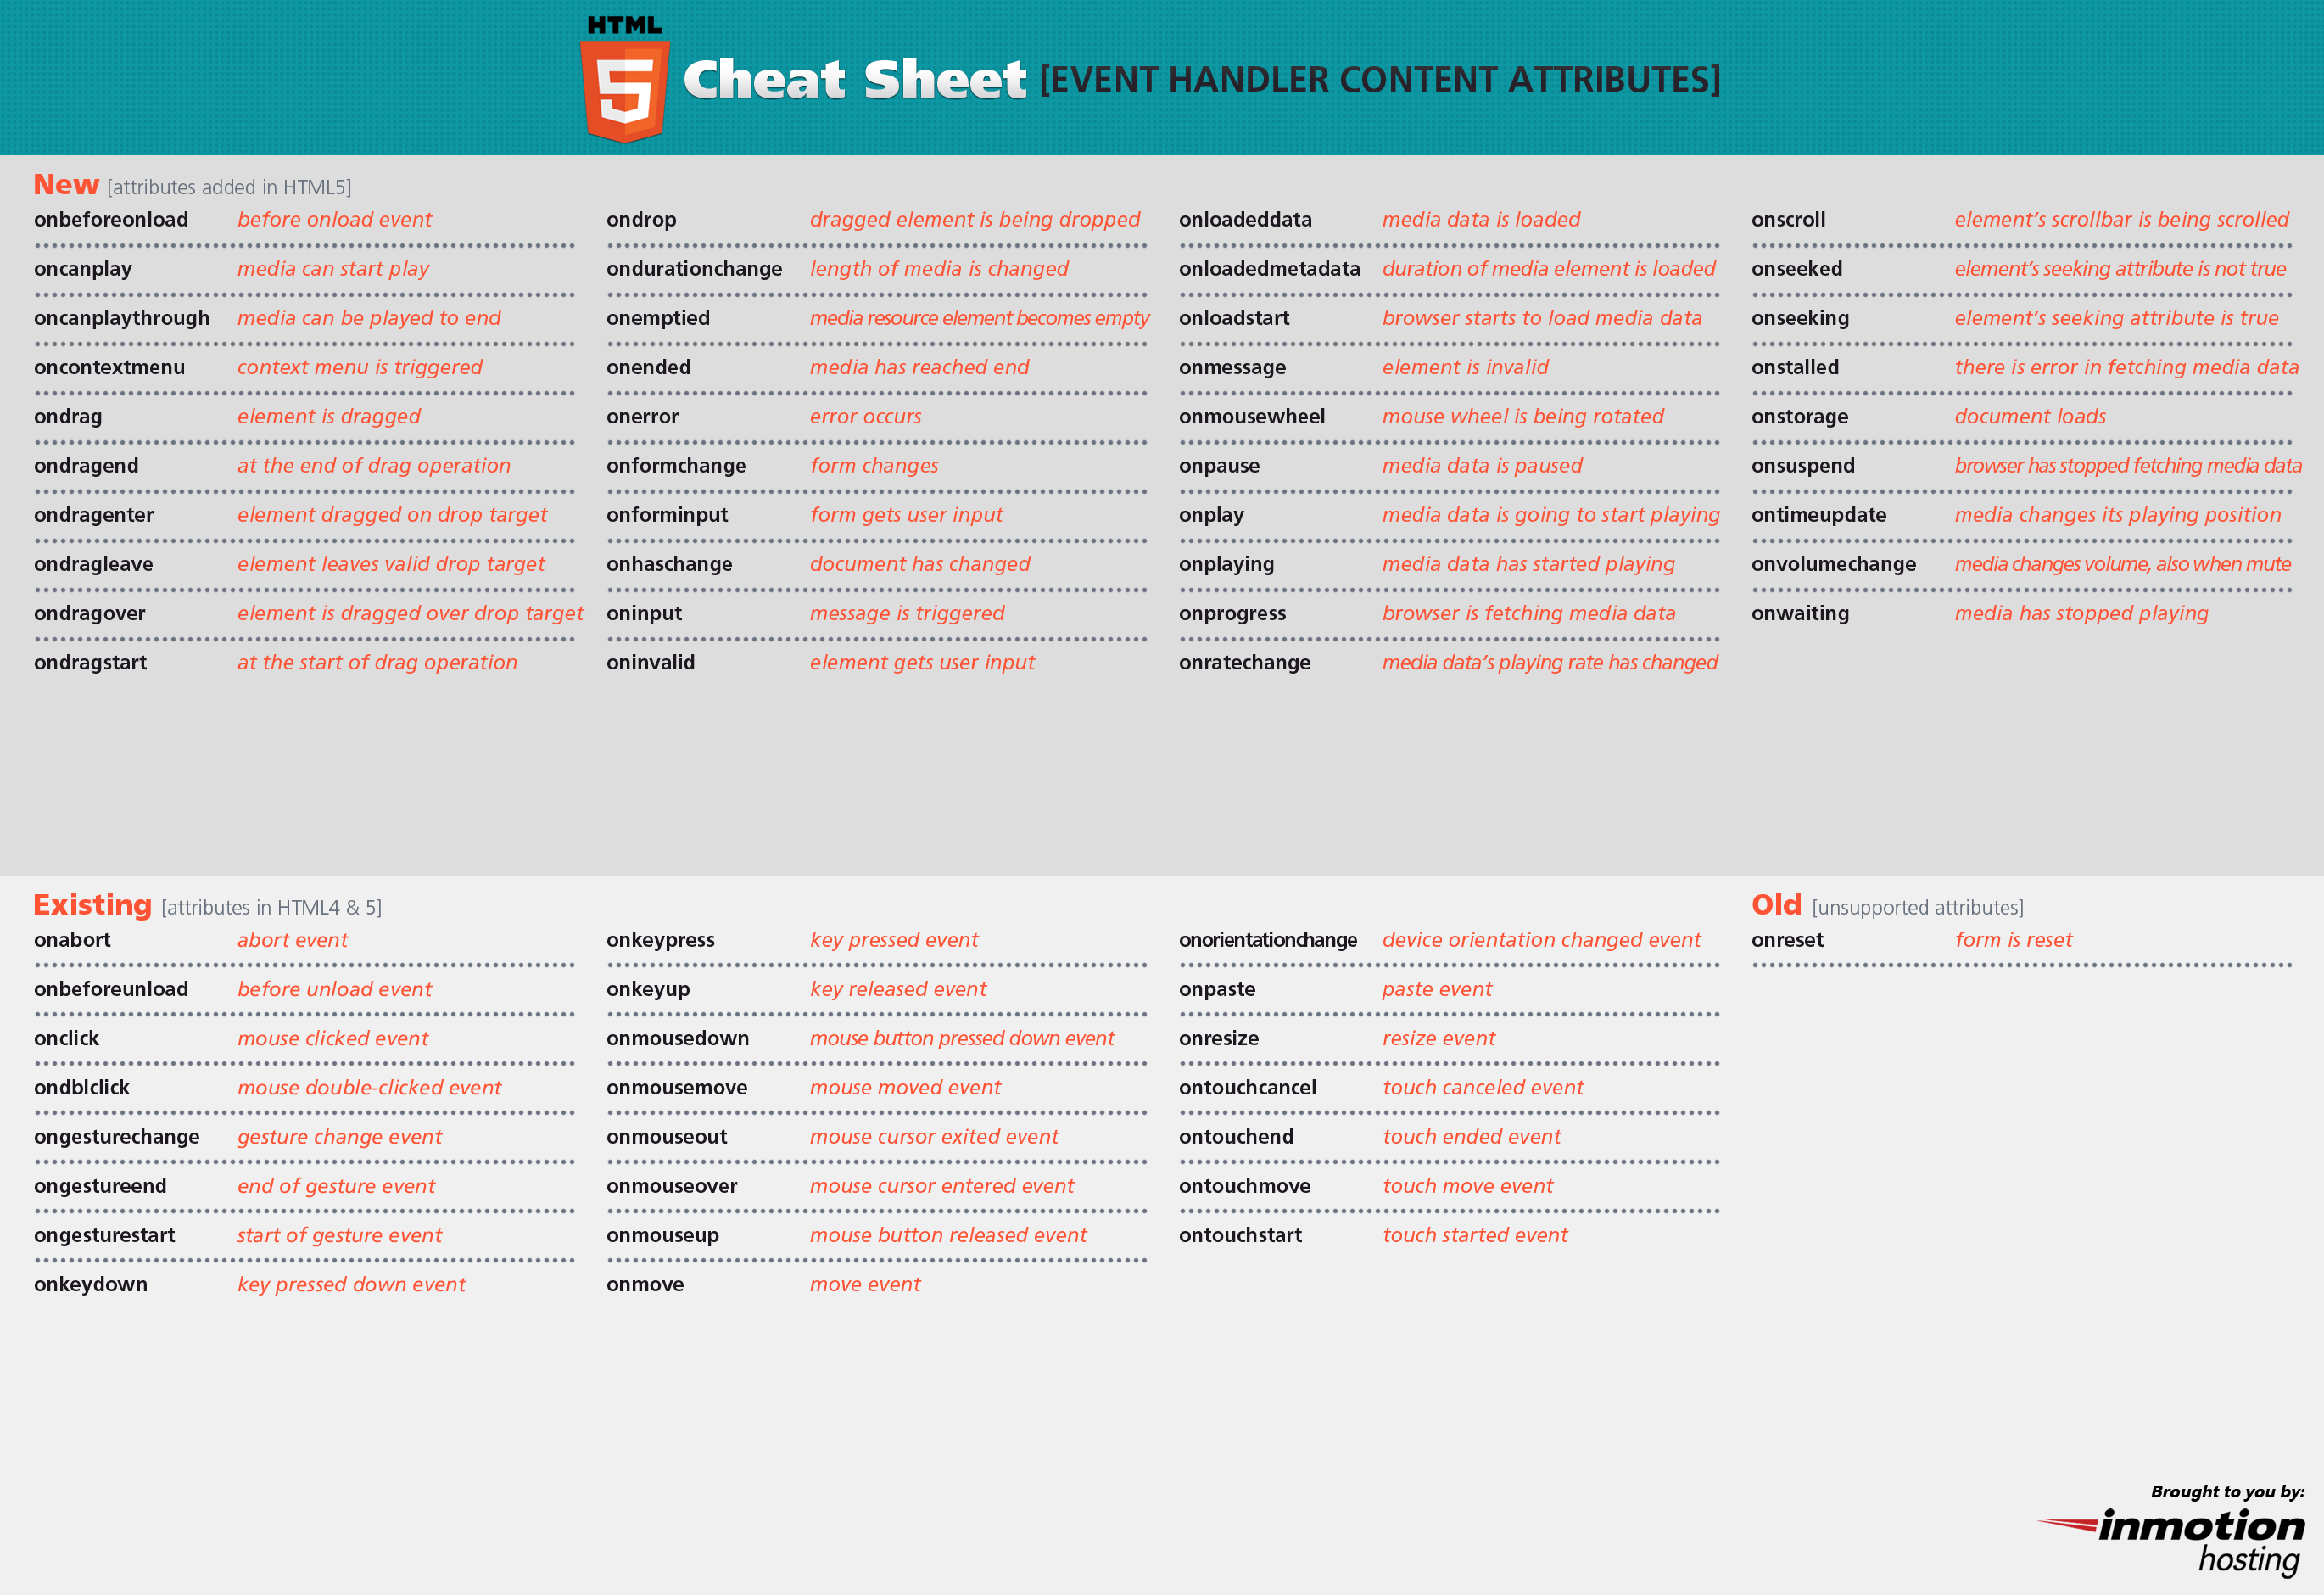 Yet another sysadmin's compendium of cheat sheets | FB Security Group